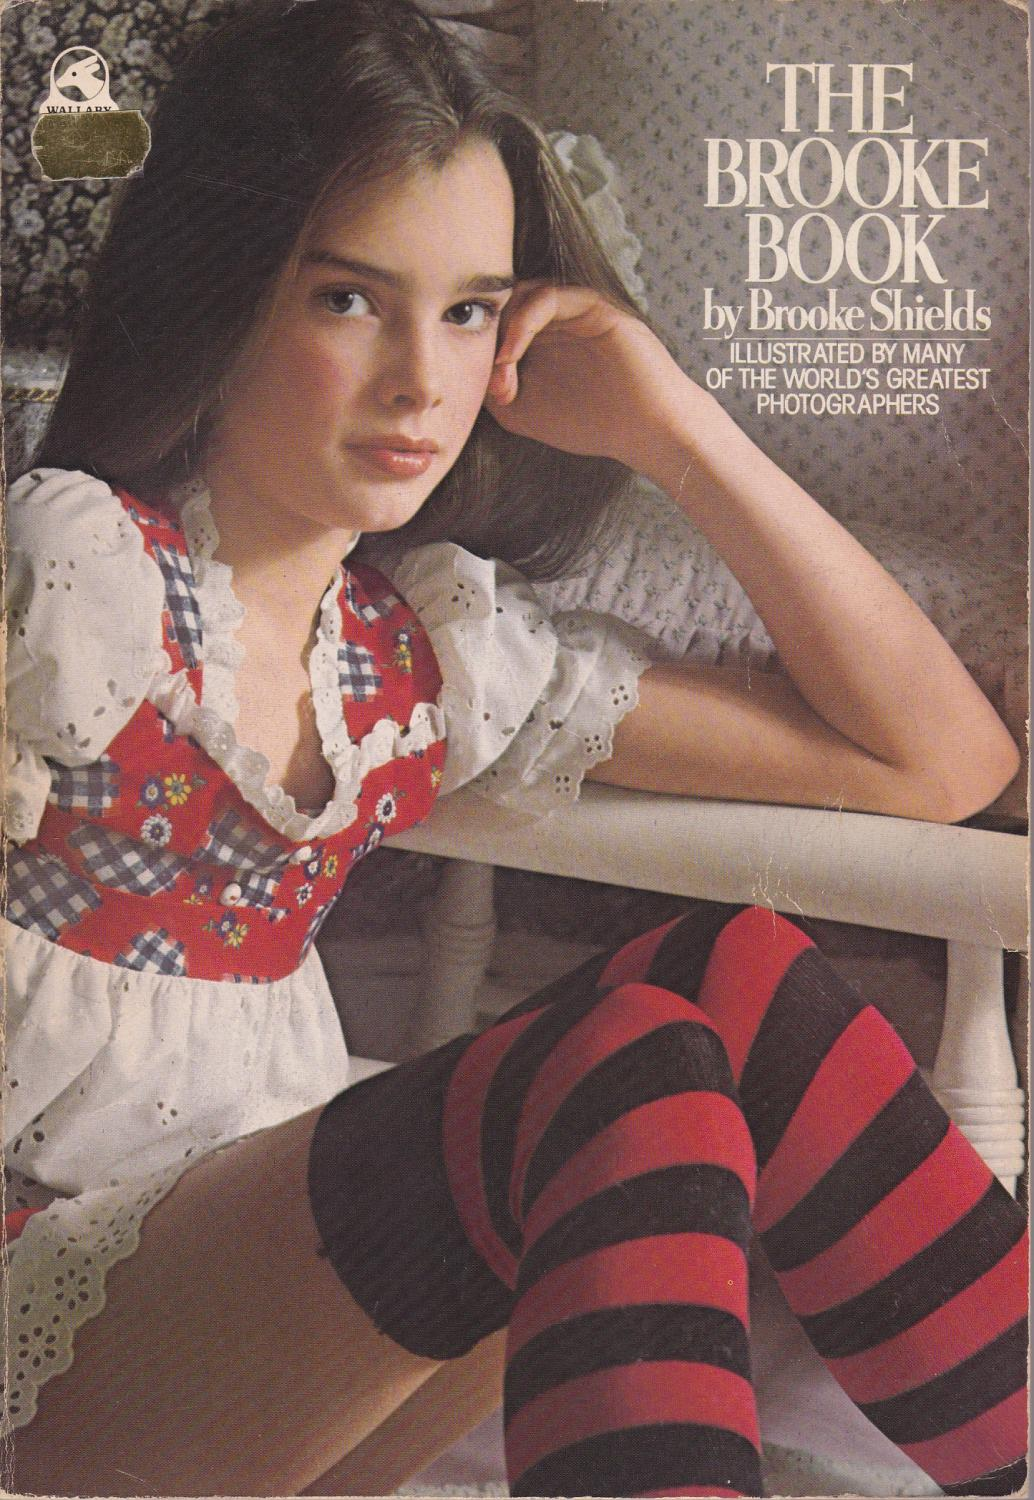 from Maxwell young brooke shields book nude